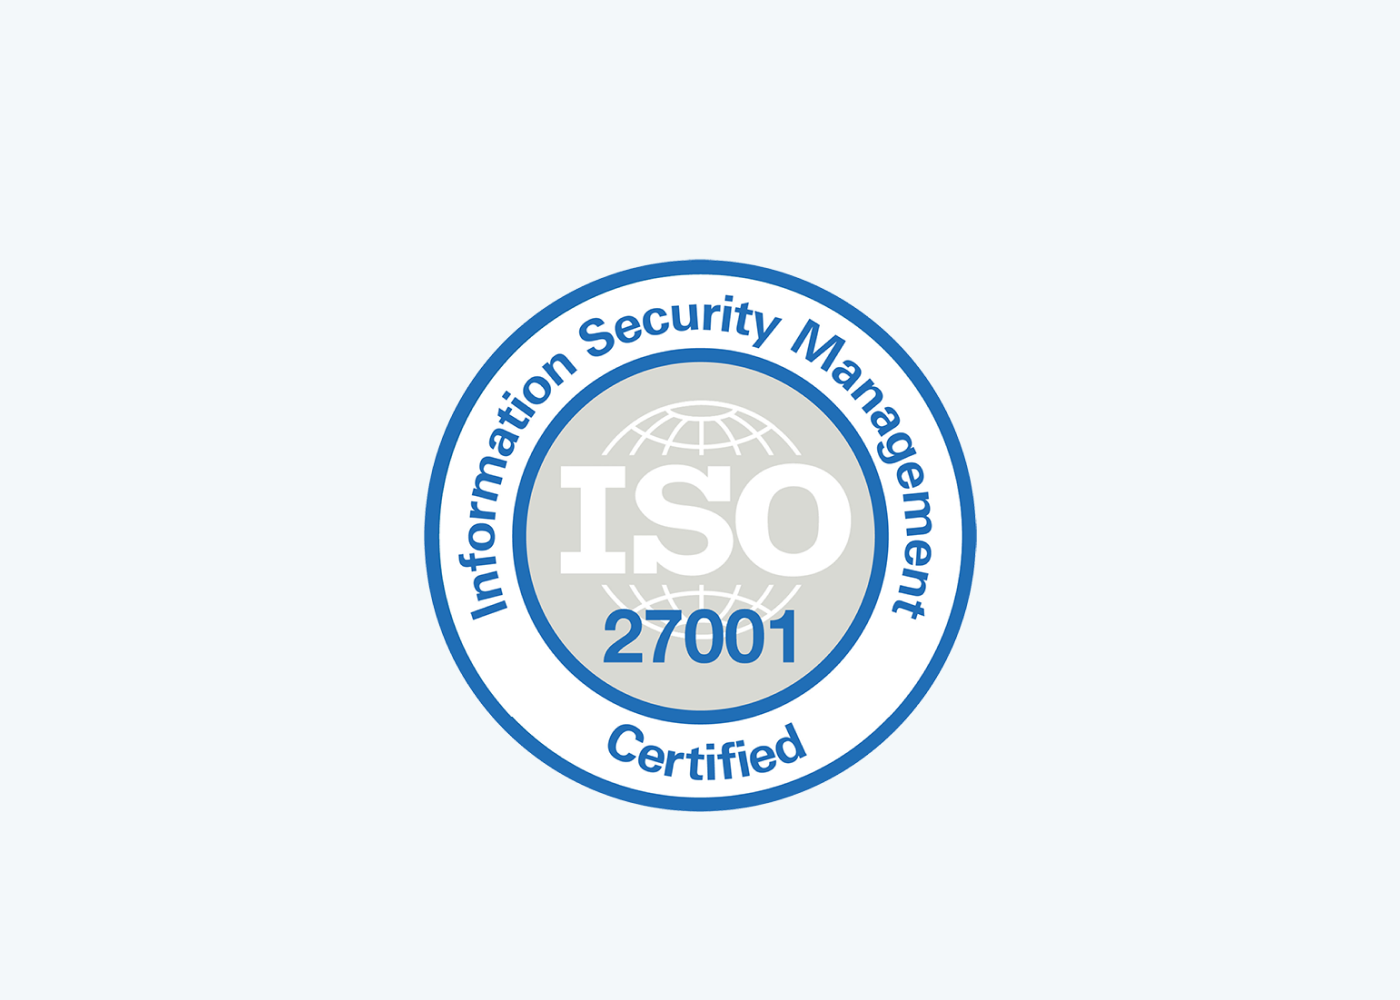 OTA Insight secures ISO/IEC 27001 certification